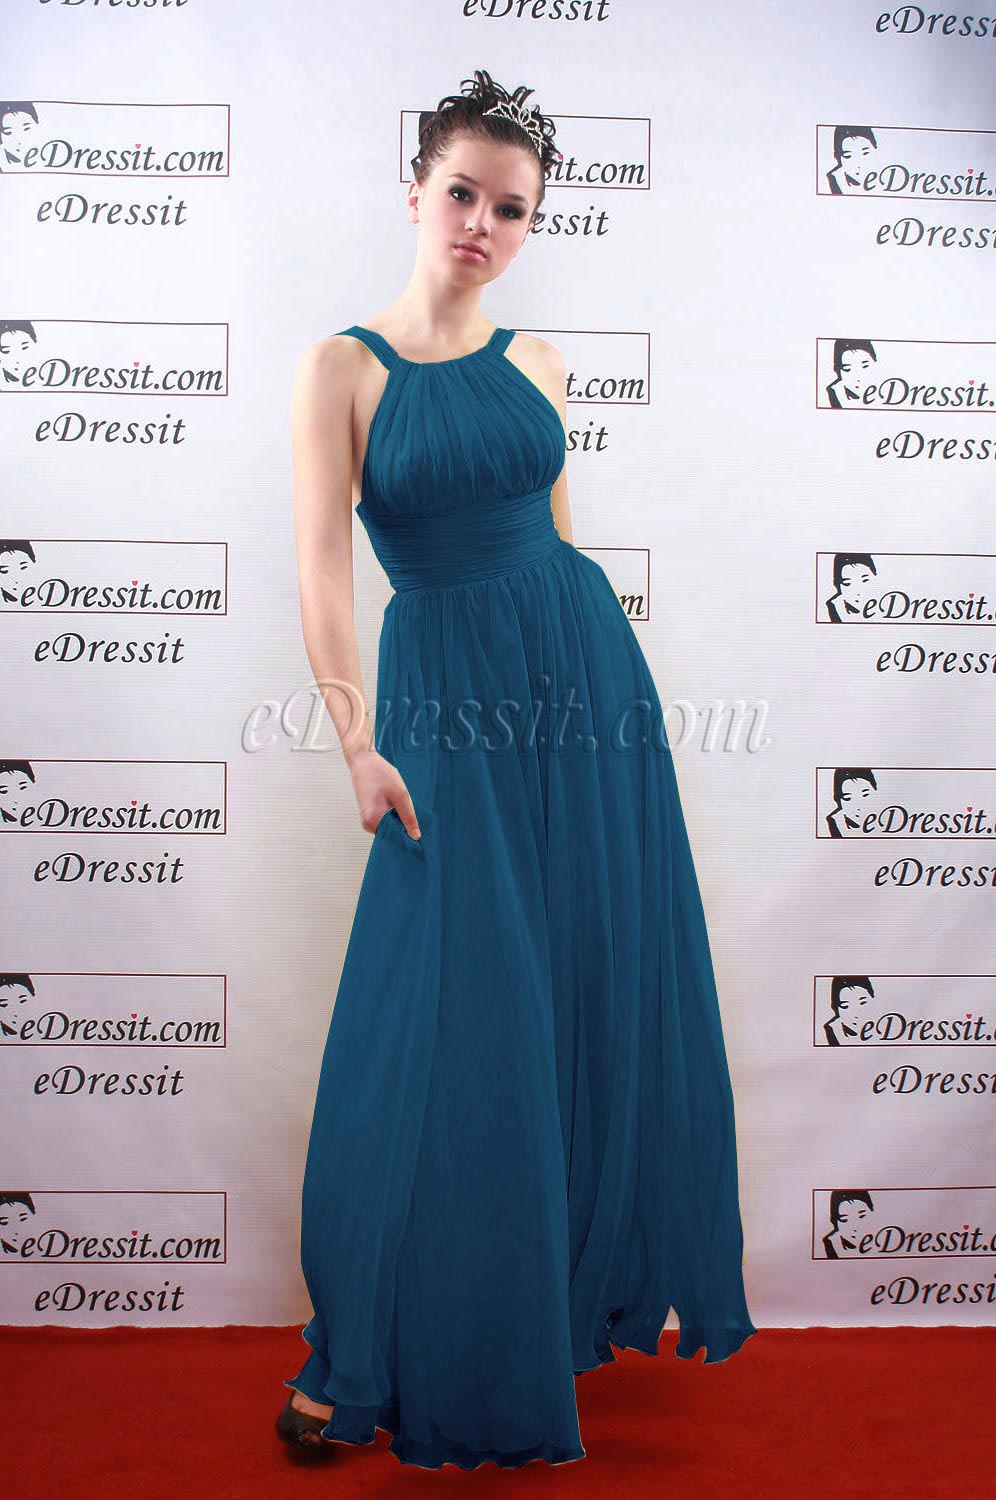 Clearance Sale !  eDressit Evening Dress--UK16 (00081403b)